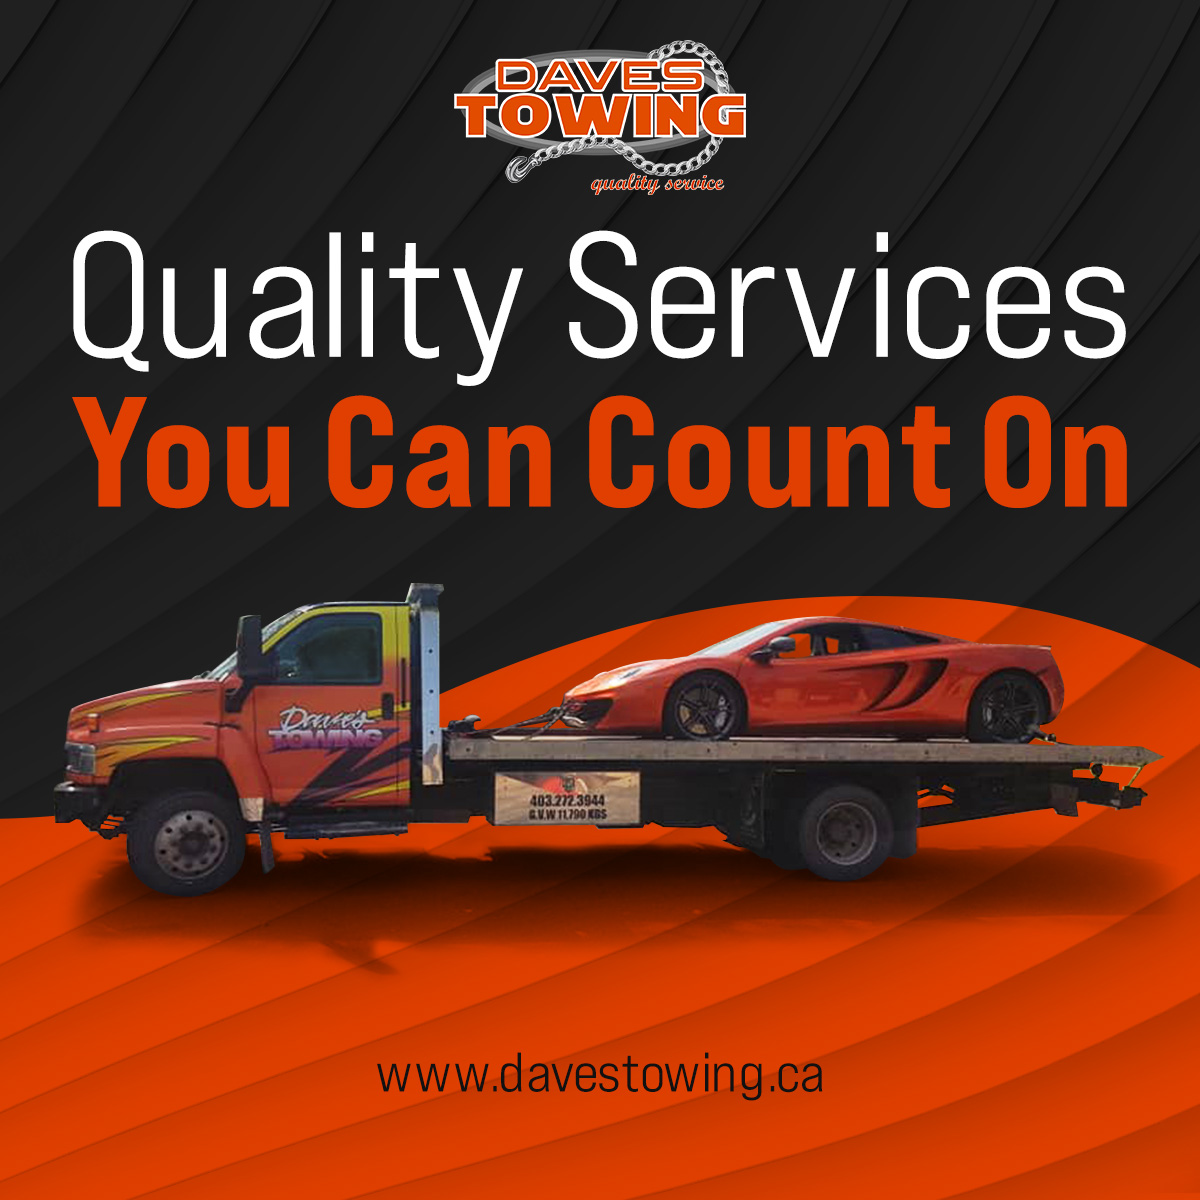 20201117_daves_towing_1_1200x1200 Business Card